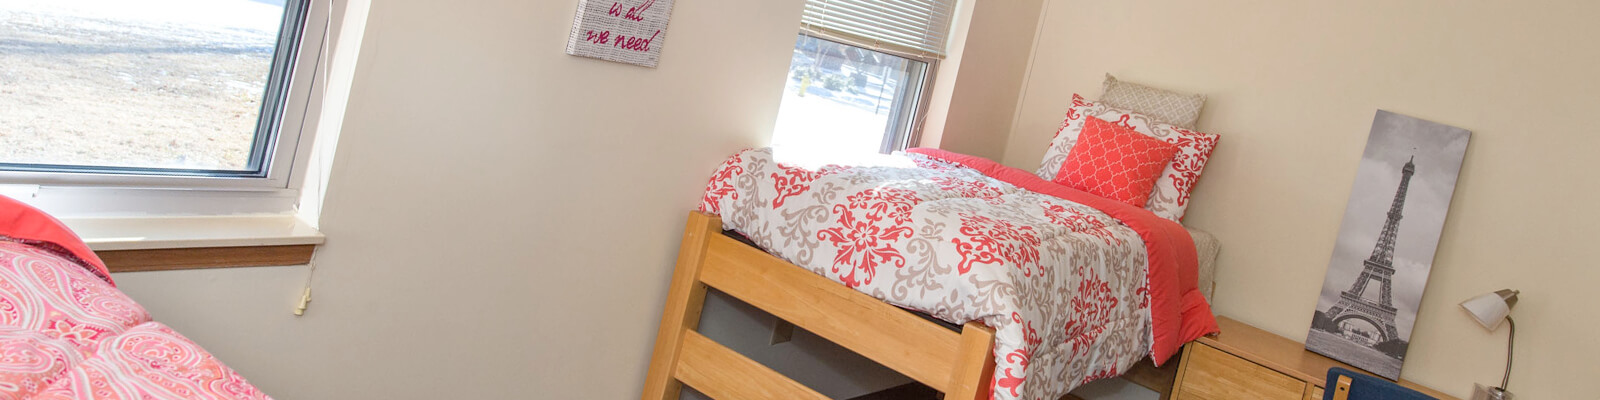 residence hall bedroom with beds, decor and windows